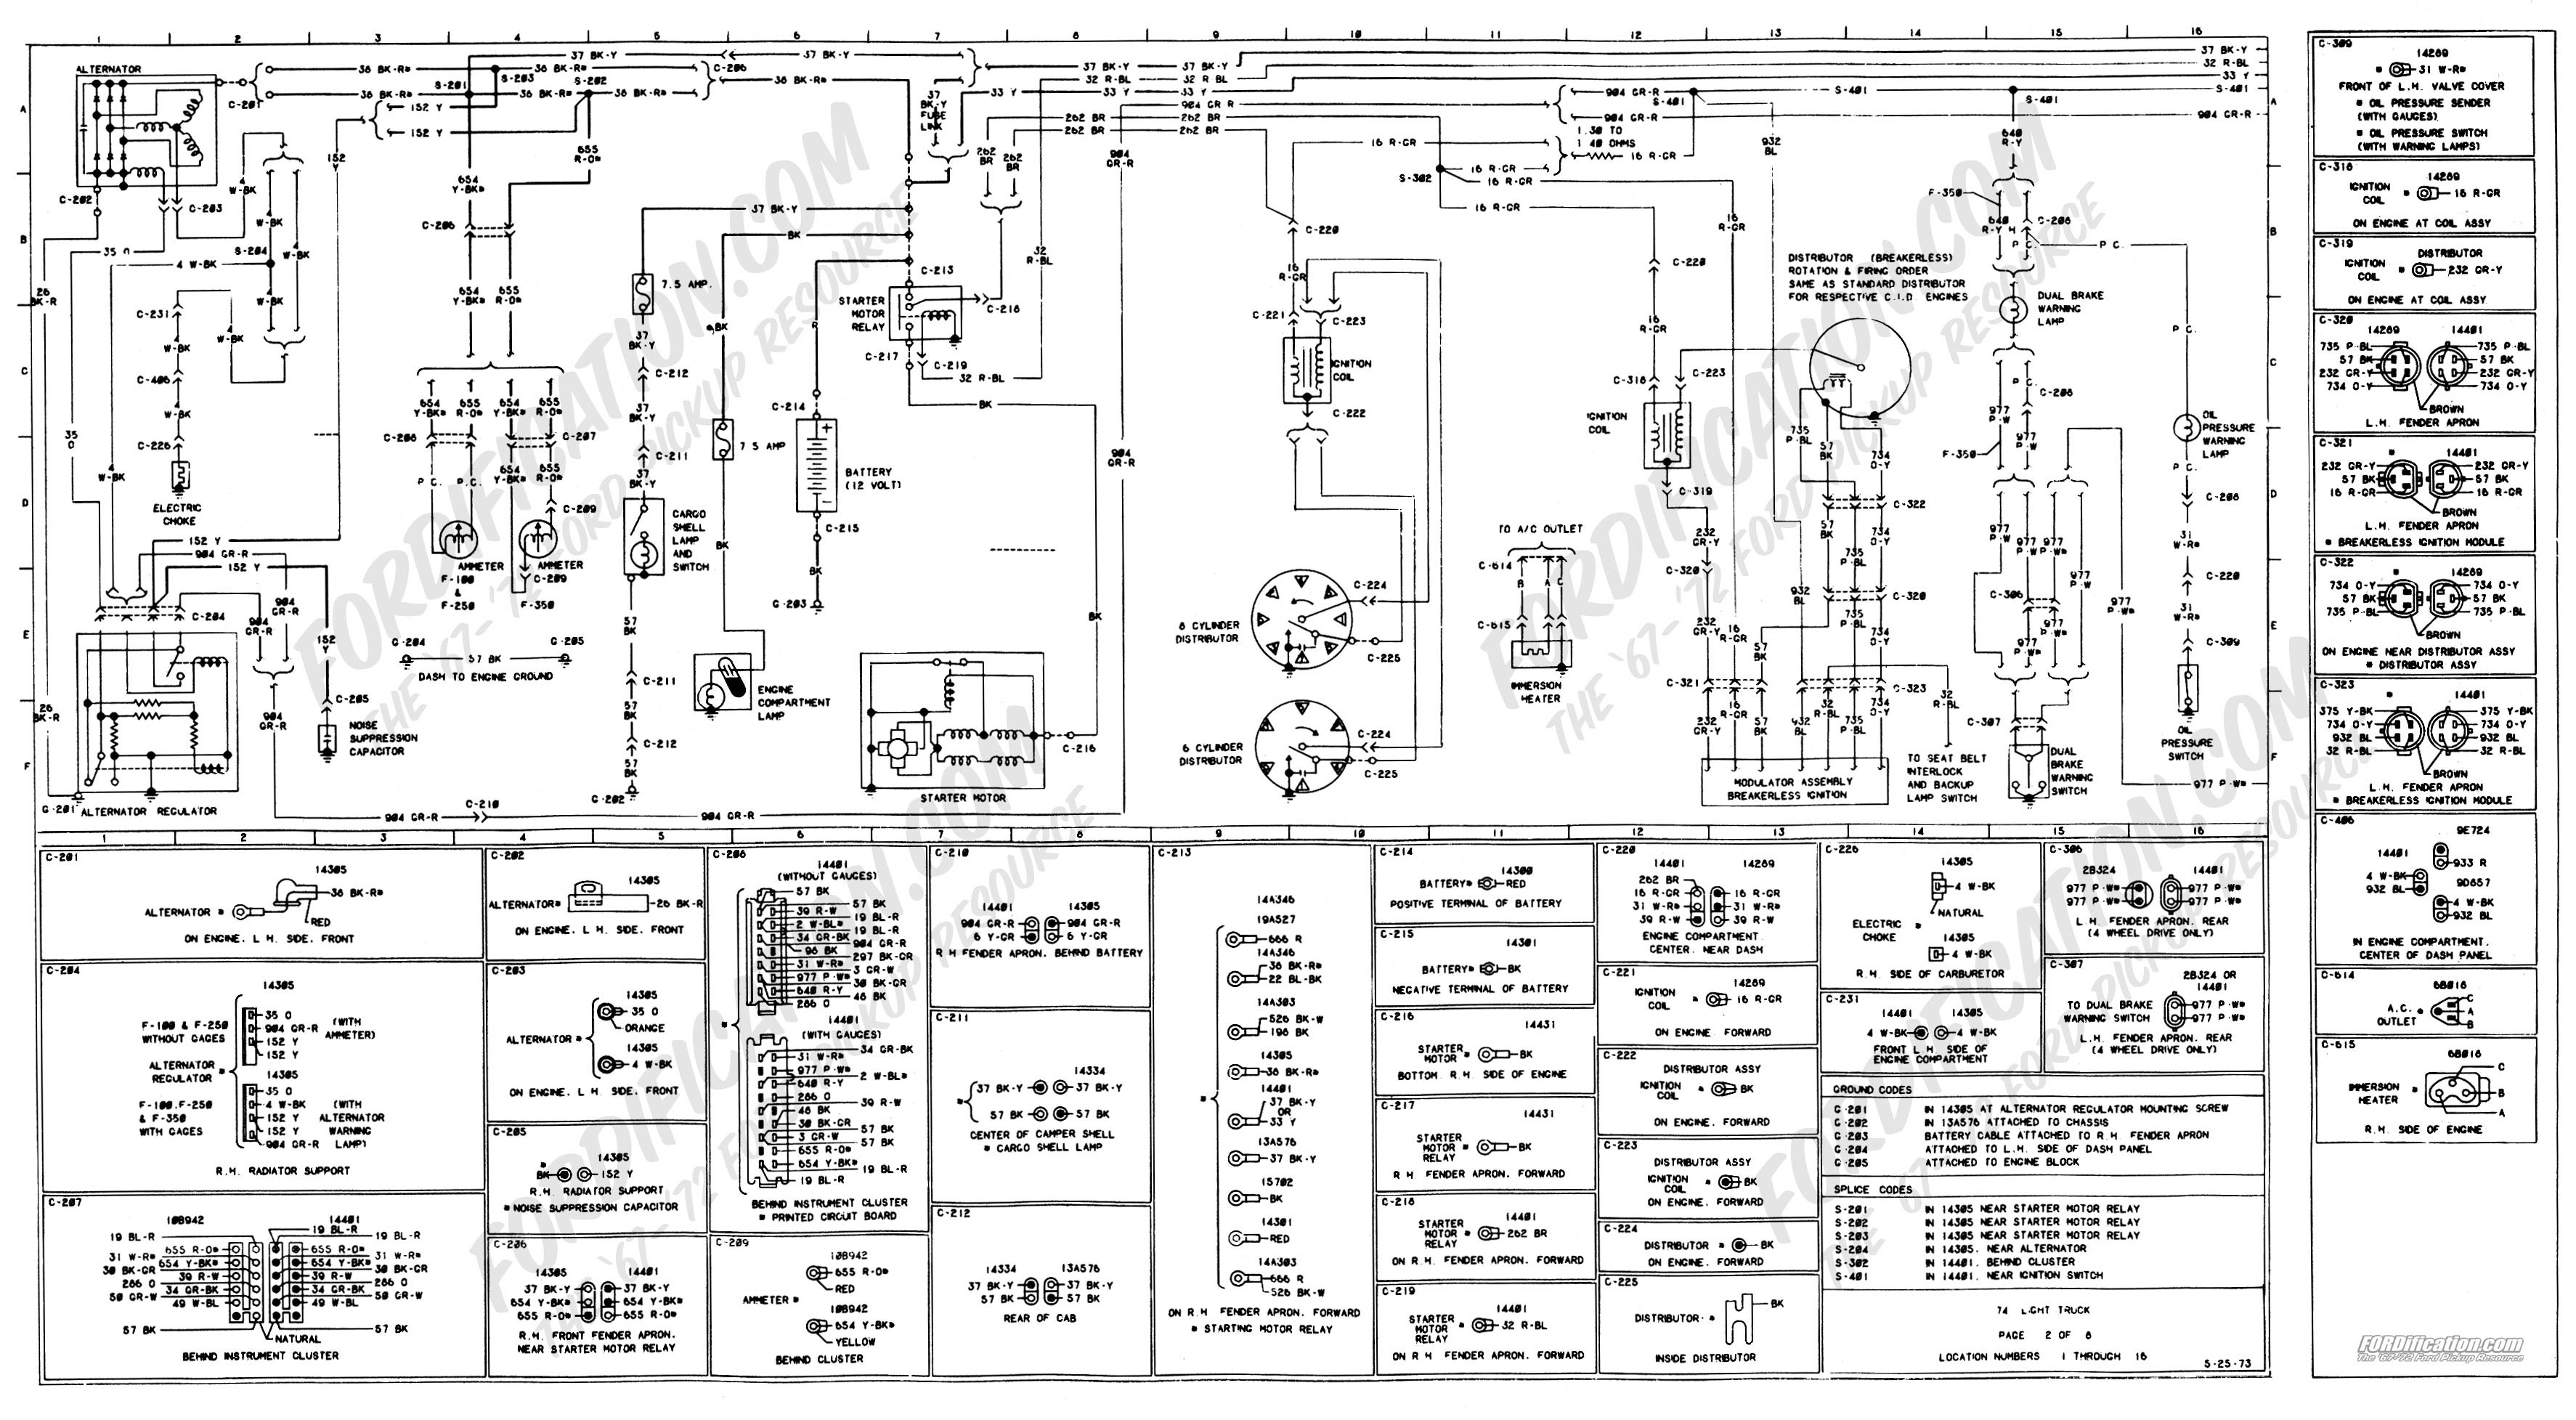 99 f350 headlight wiring diagram funny flow sterling truck diagrams for alternator best site